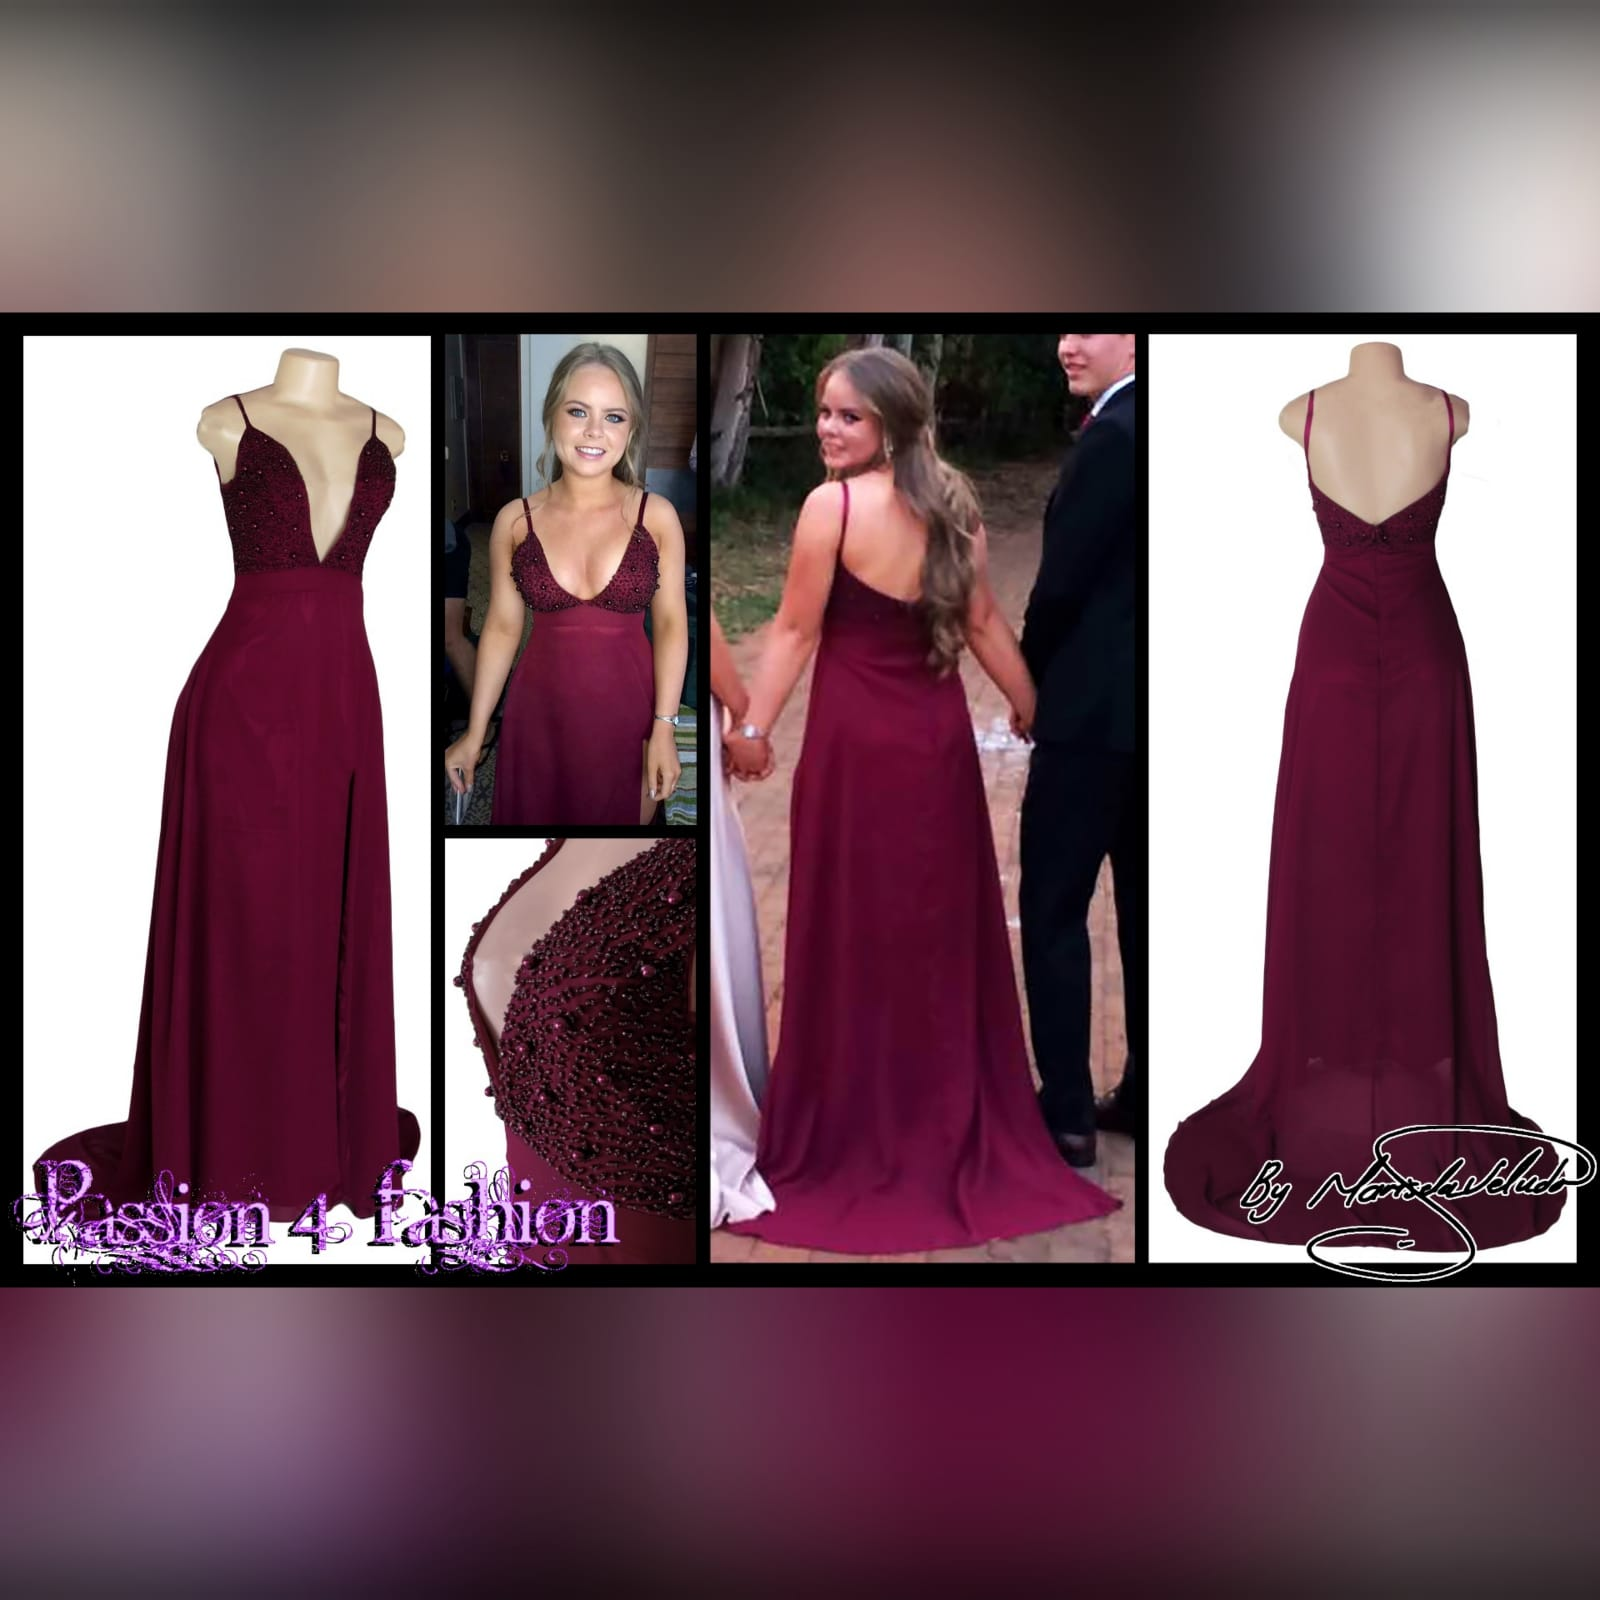 Burgundy plunging neckline long prom dress 4 burgundy plunging neckline long matric dance dress with a slit and a train. With a beaded bodice.